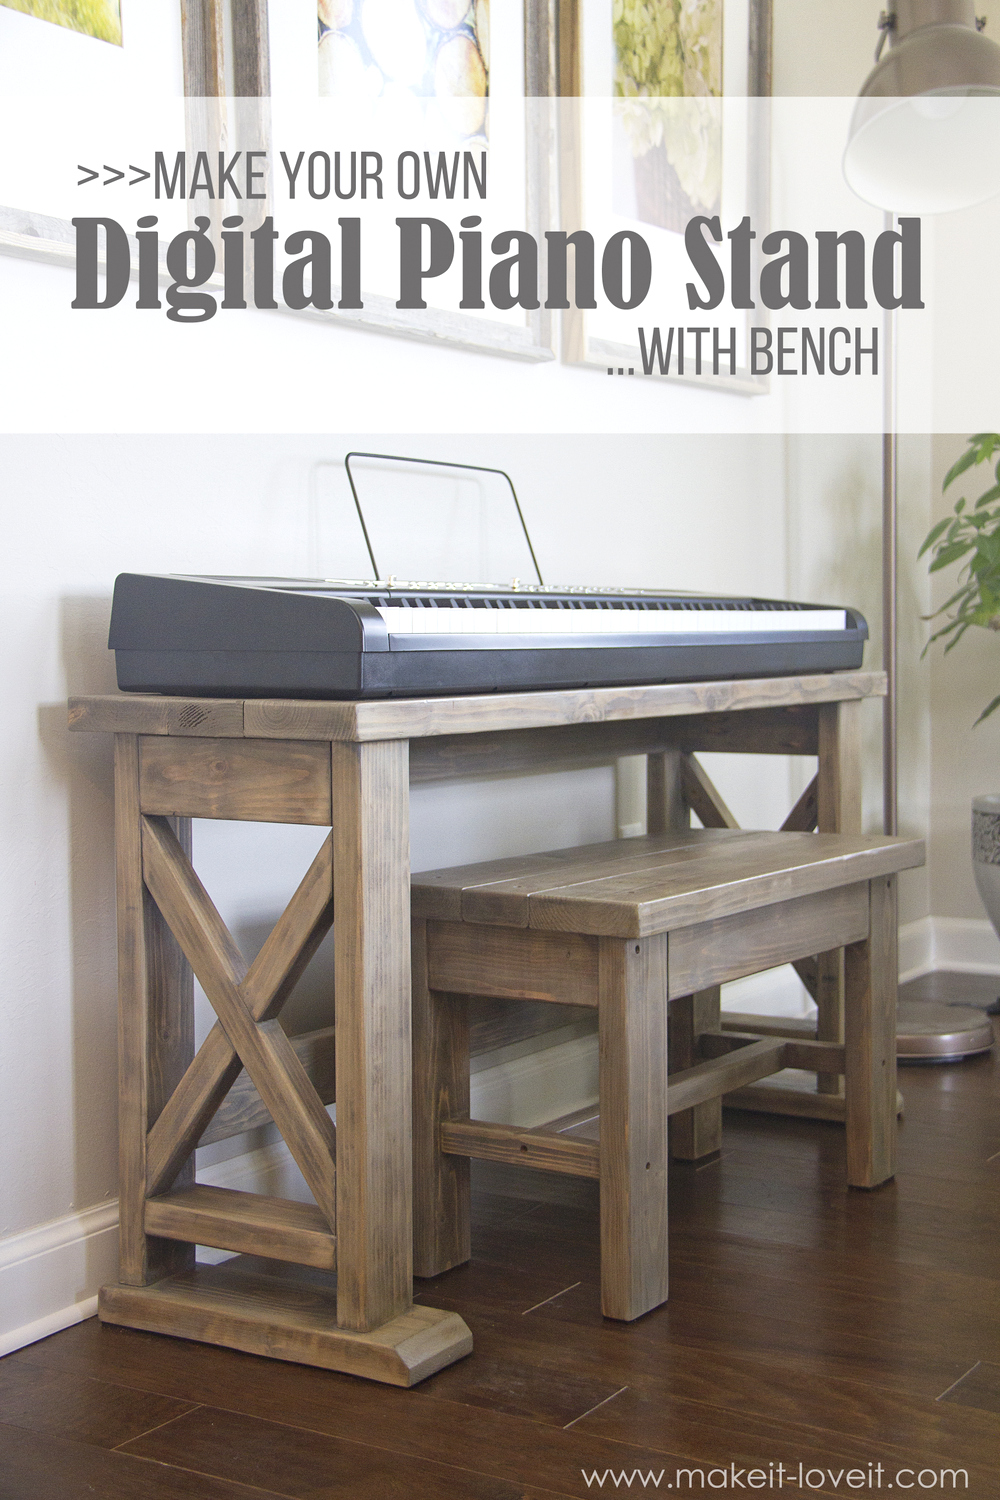 DIY Digital Piano Stand plus Bench (…a $25 project!!)